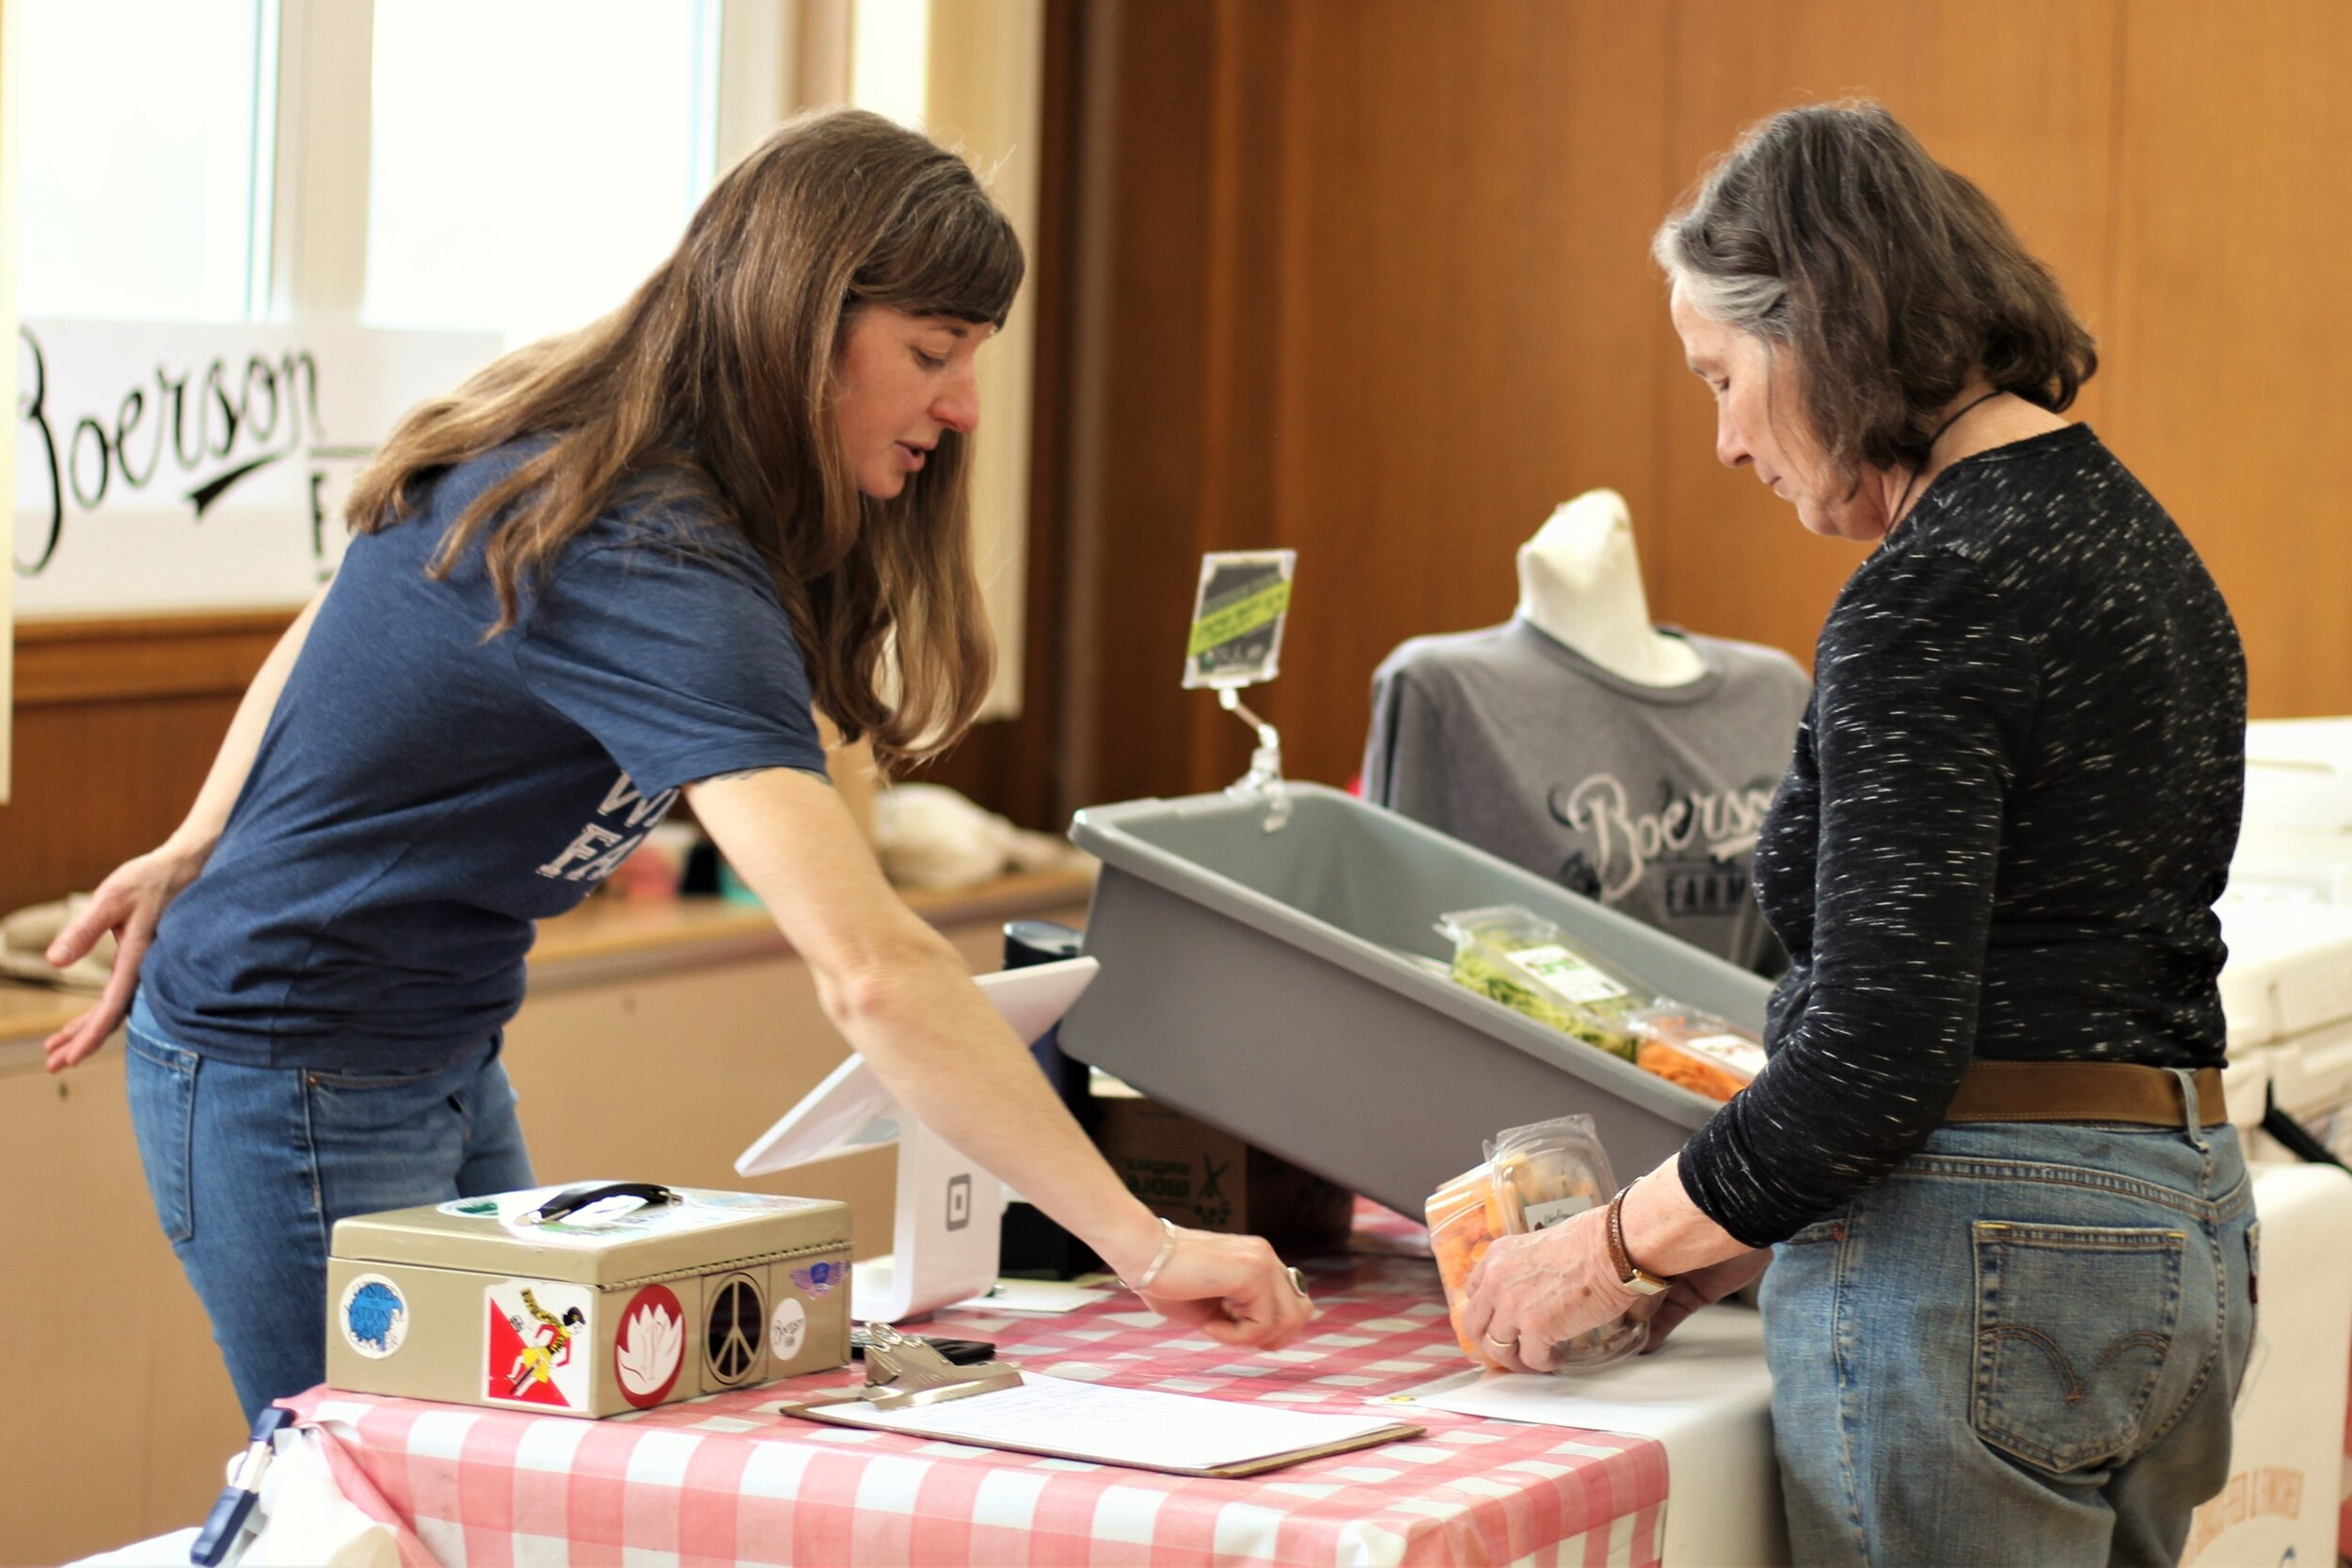 Danielle Boerson of Boerson Farm informs Sue McConnell of the benefits to buying local.